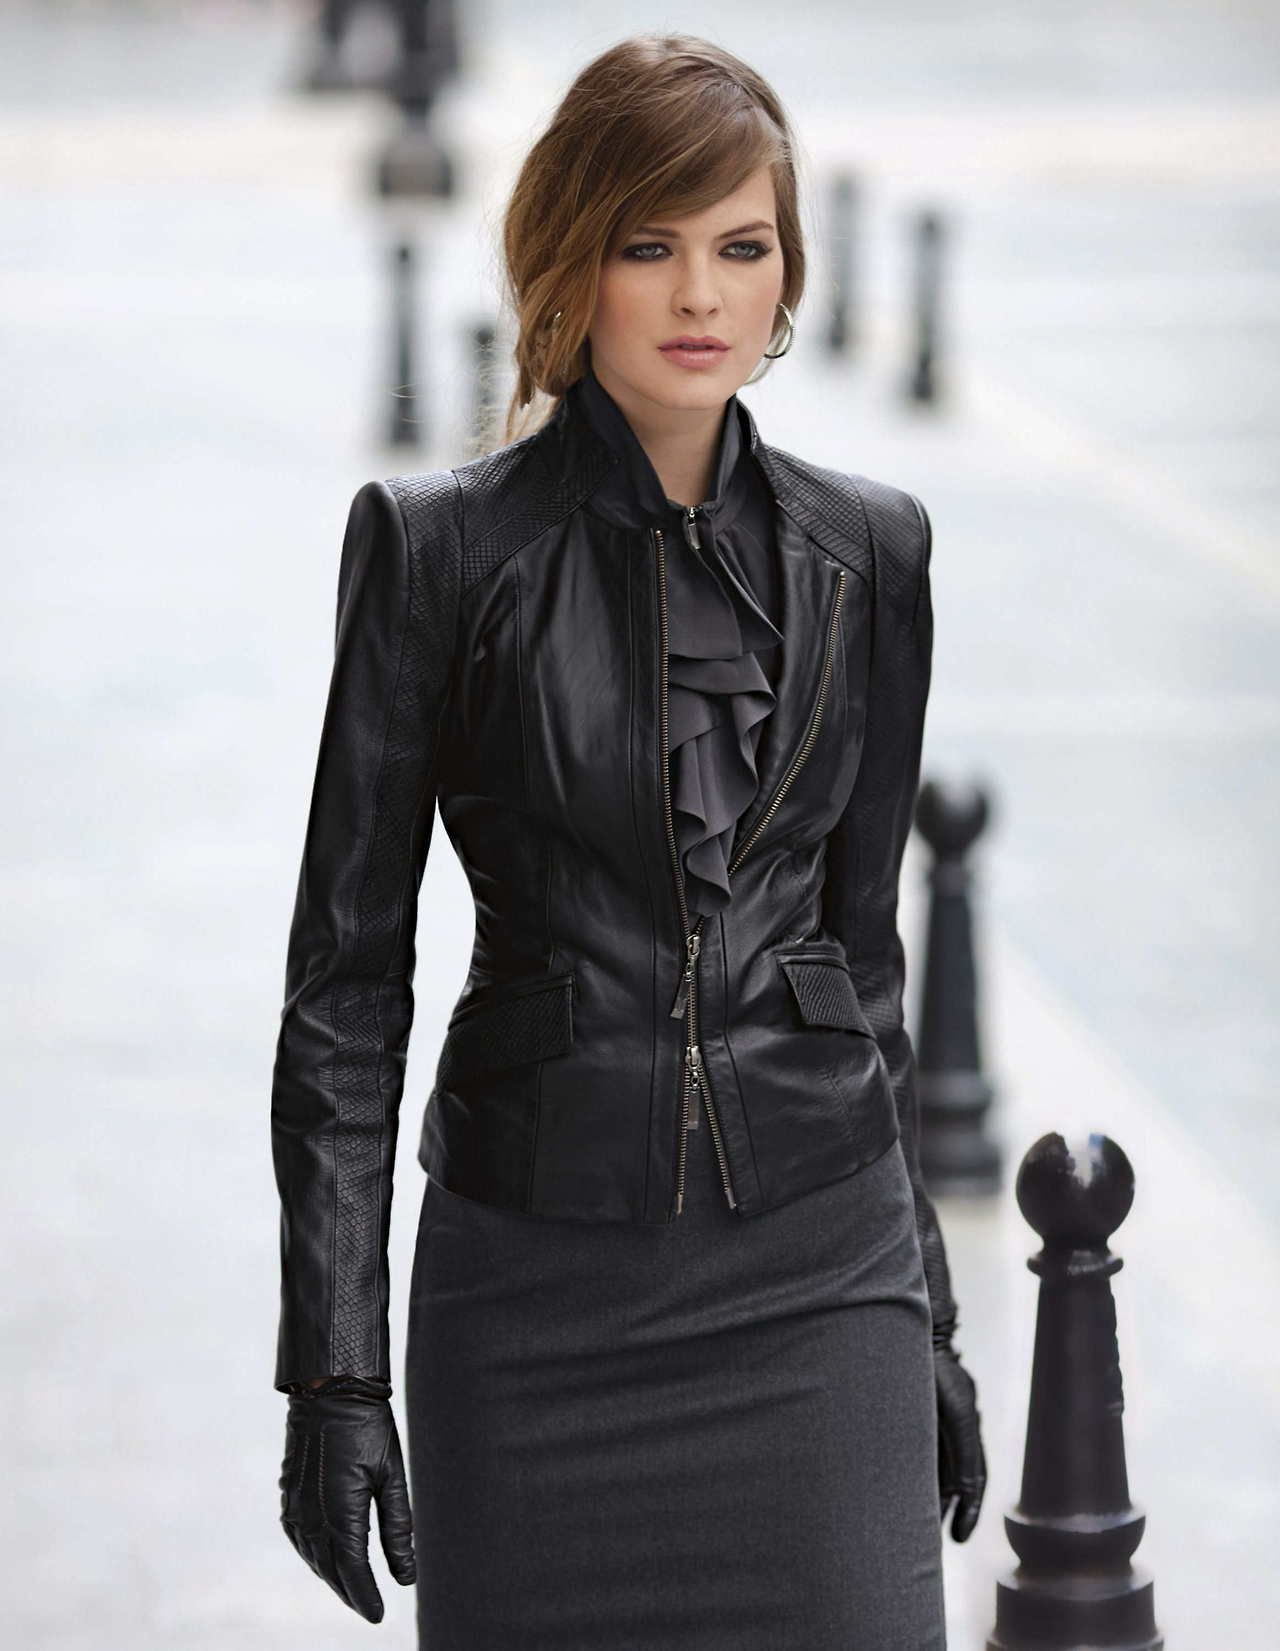 Winter Dress ruffle dress with black leather jacket and